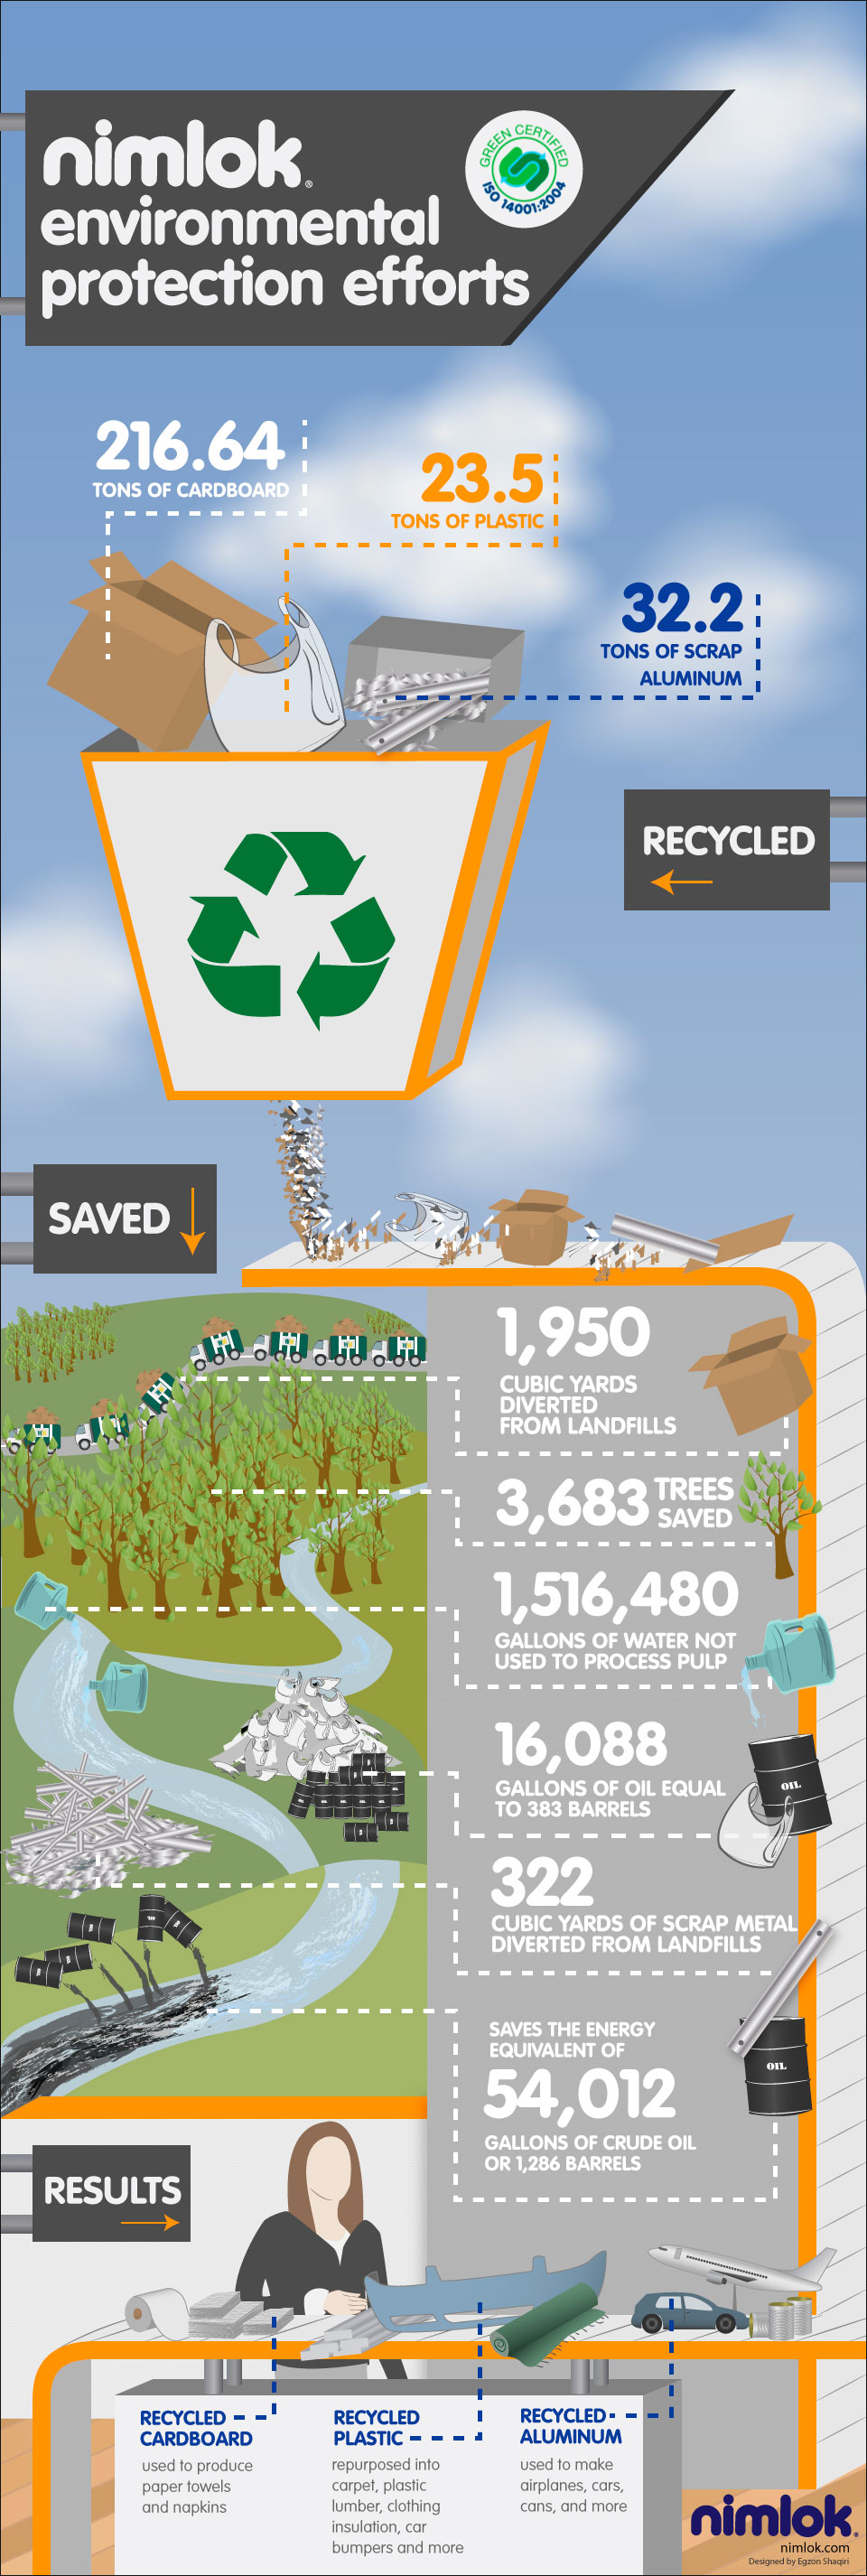 nimlok green achievements infographic